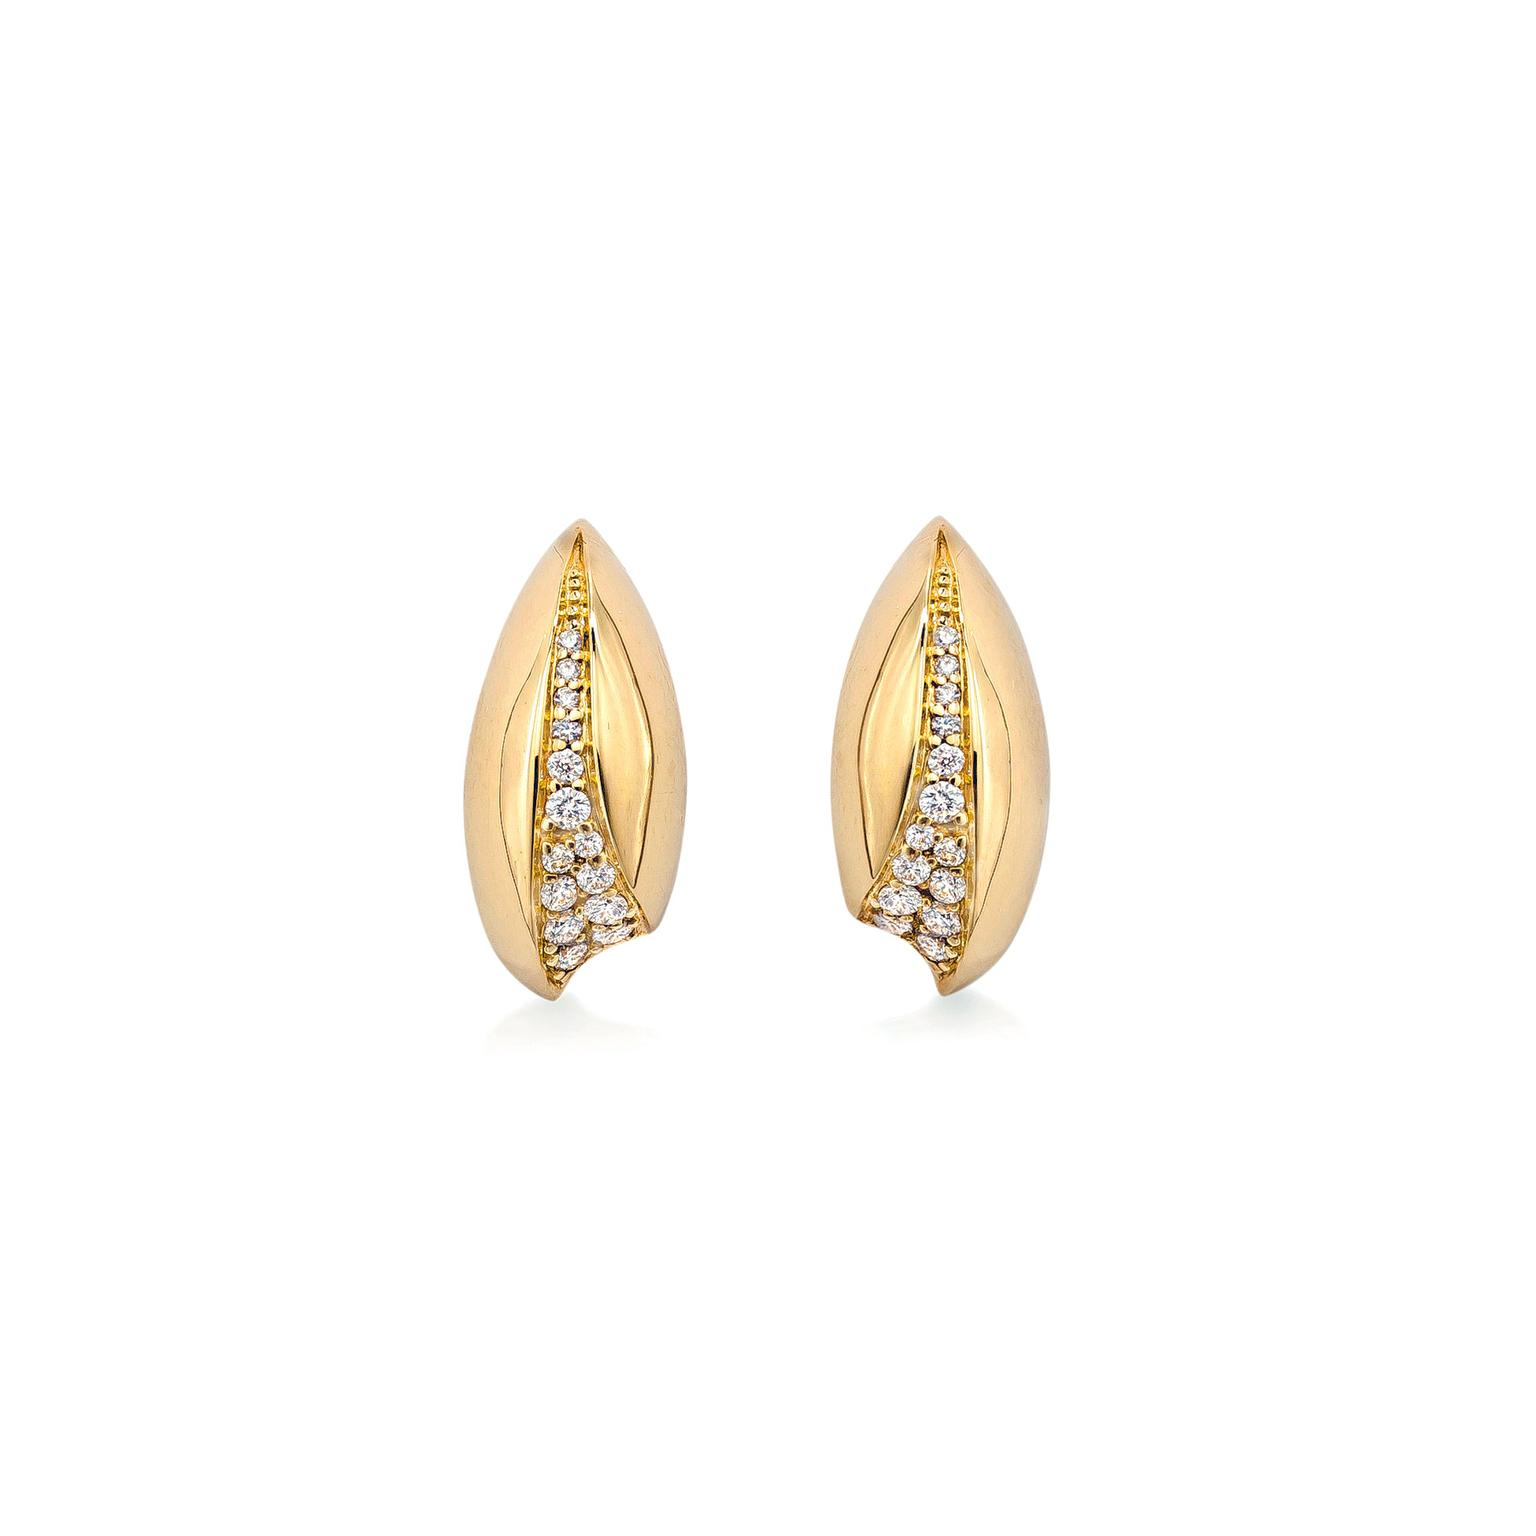 Mappin & Webb Wildfell pavé stud earrings